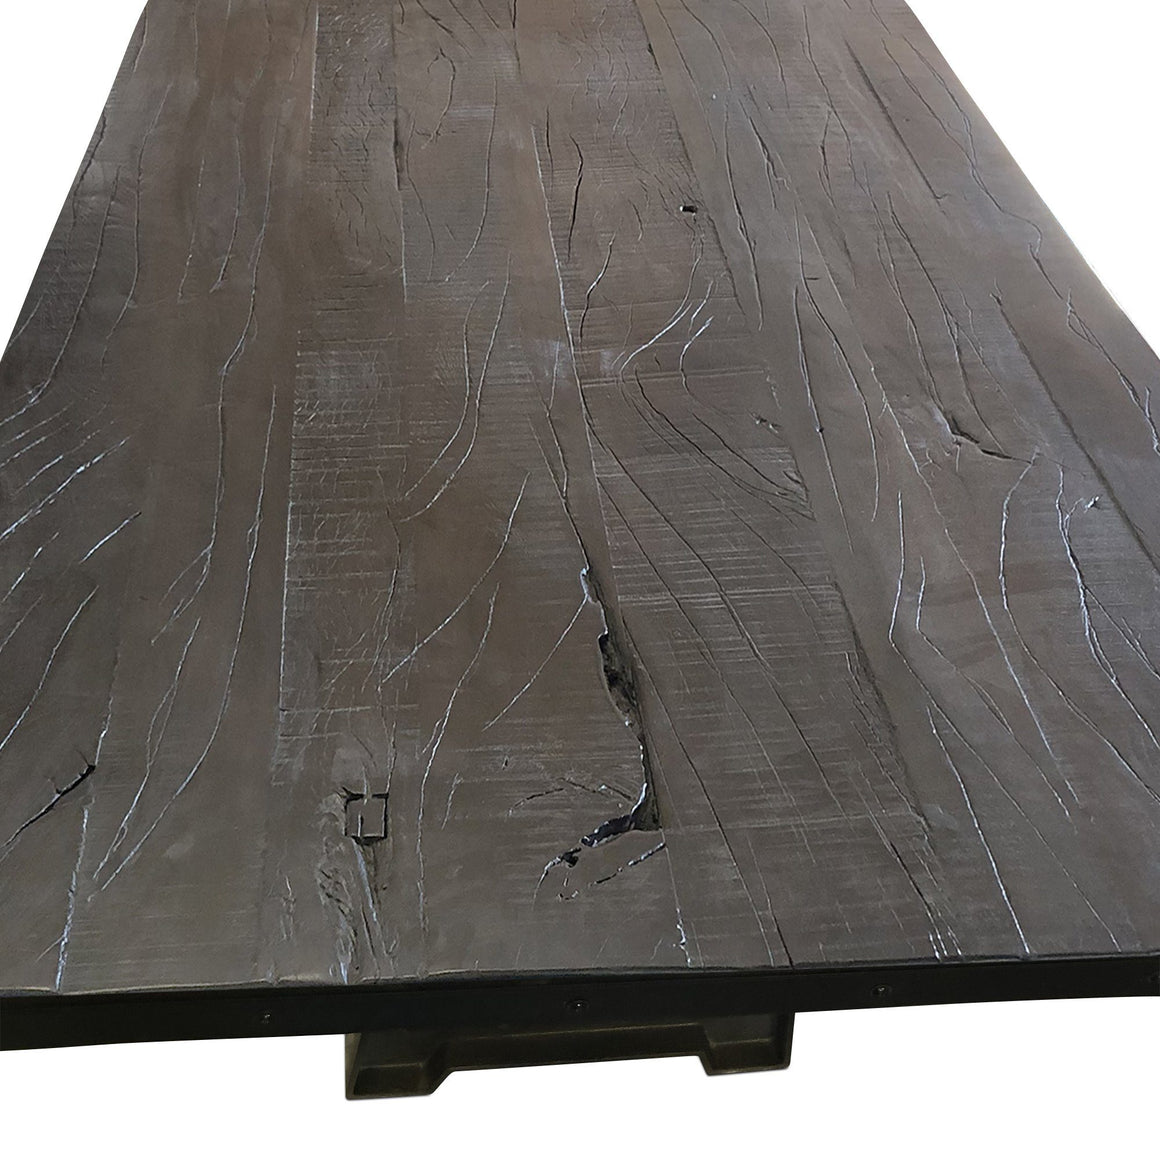 "Solid Acacia Reclaimed Distressed Wood Dining or Desk Top 80x40 2.25"" Dark Dining Table Rustic Deco"